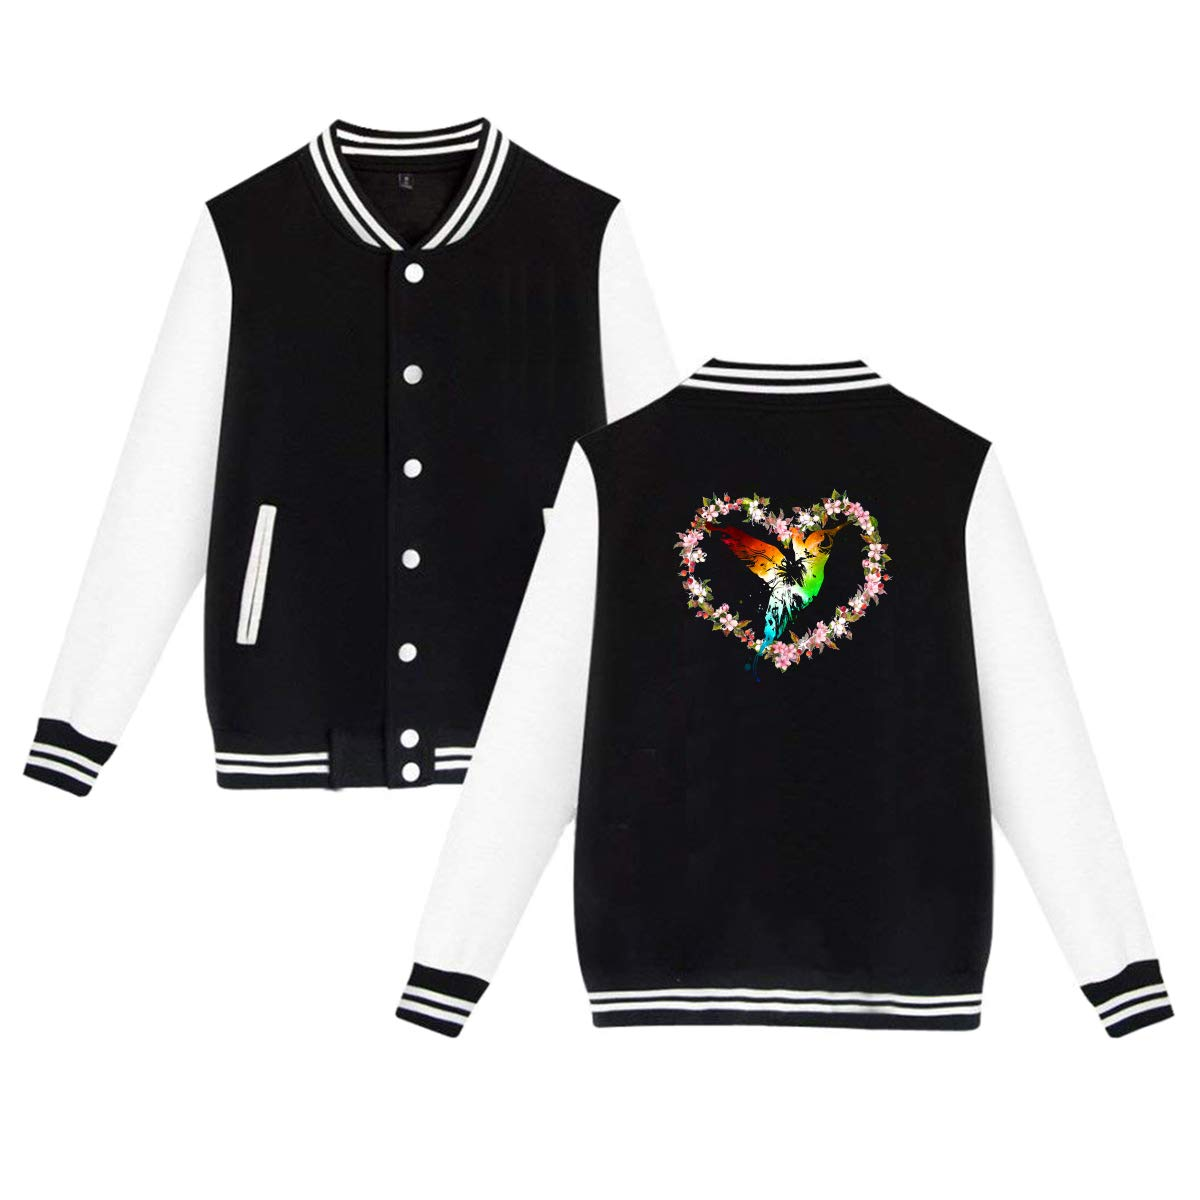 MF SFLK Heart Wreath with Hummingbird Baseball Jacket Uniform Unisex Sweater Coat